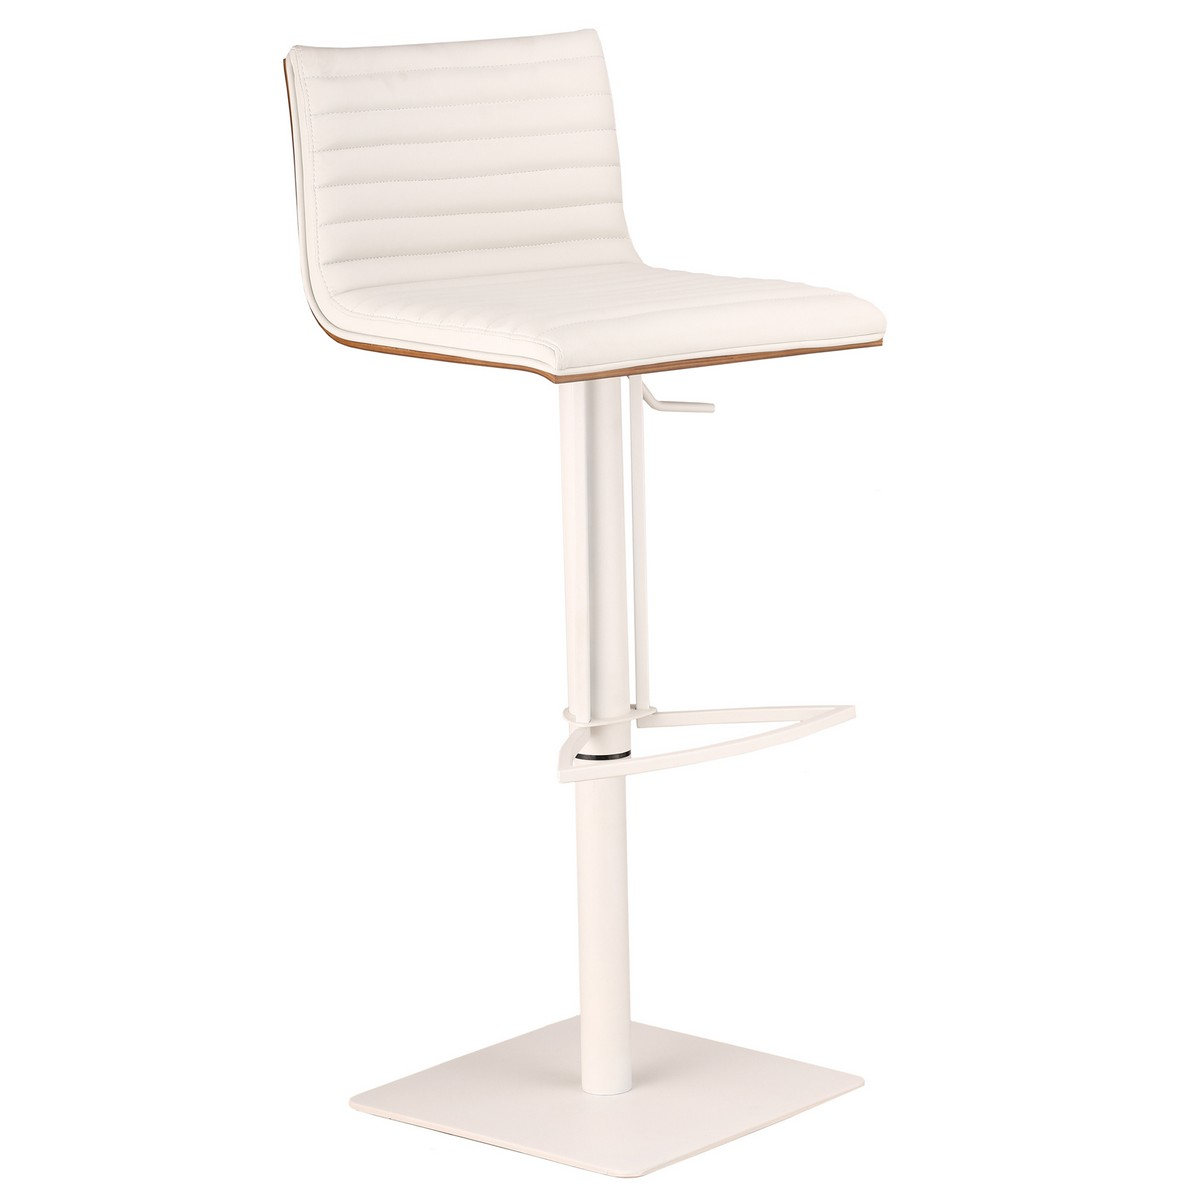 Armen Living Cafe Adjustable White Metal Barstool in White Leatherette with Walnut Back